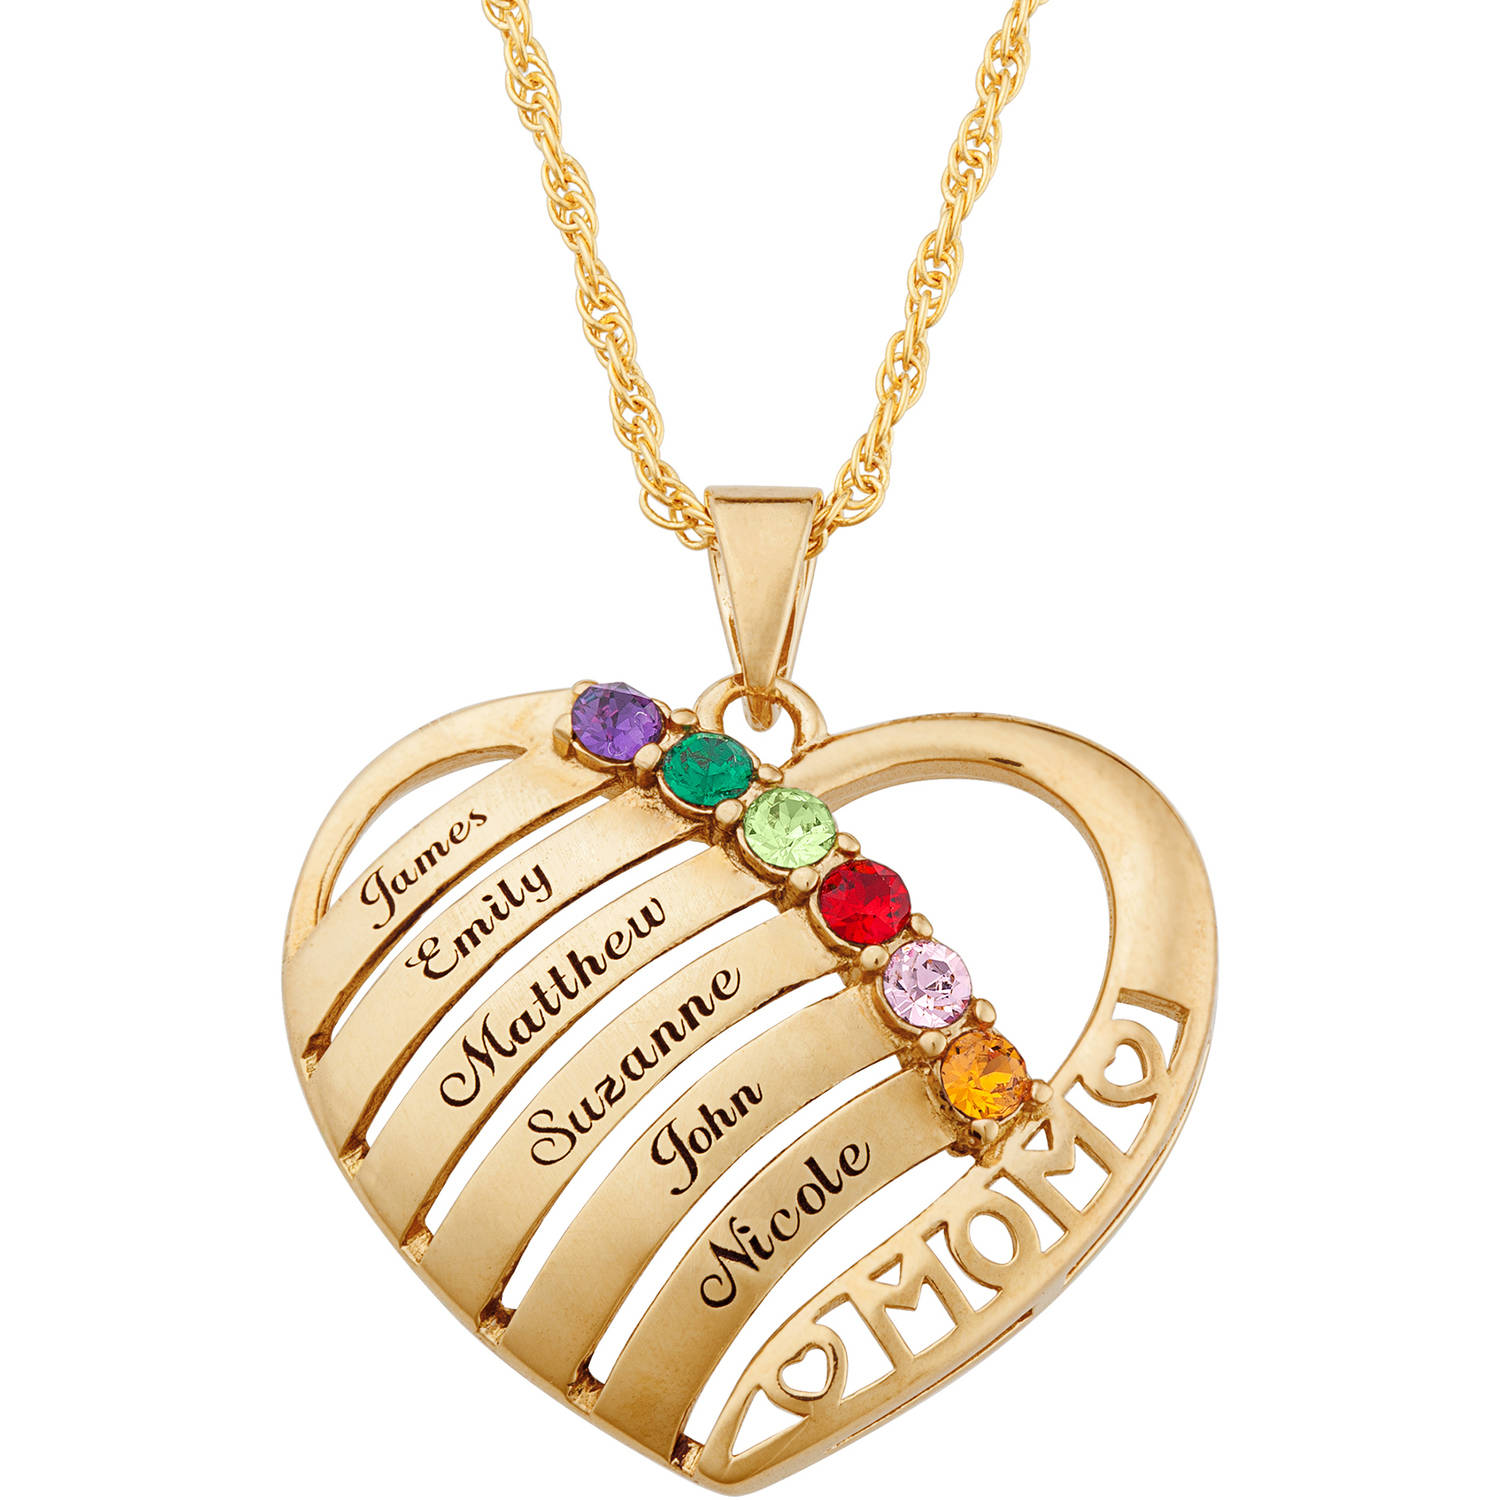 Personalized Necklaces Walmart